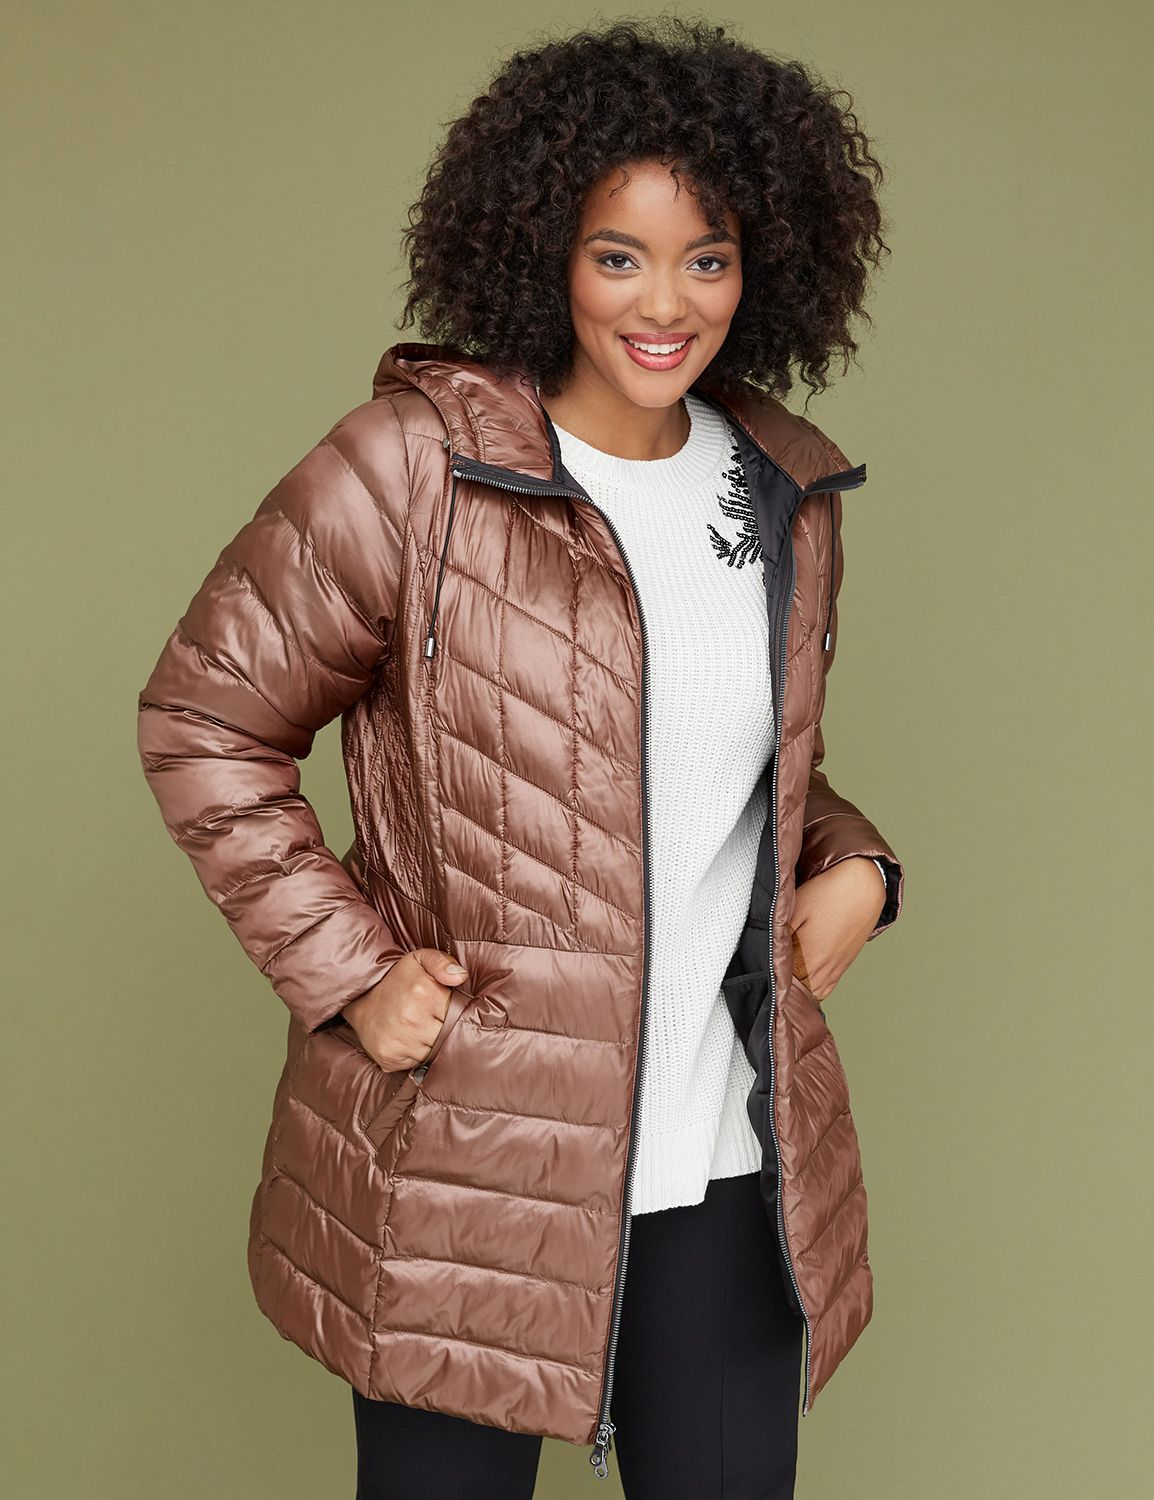 Lane Bryant Plus Size Cold Weather Fashion Finds-Midi Packable Puffer Jacket With Thermoplume Technology